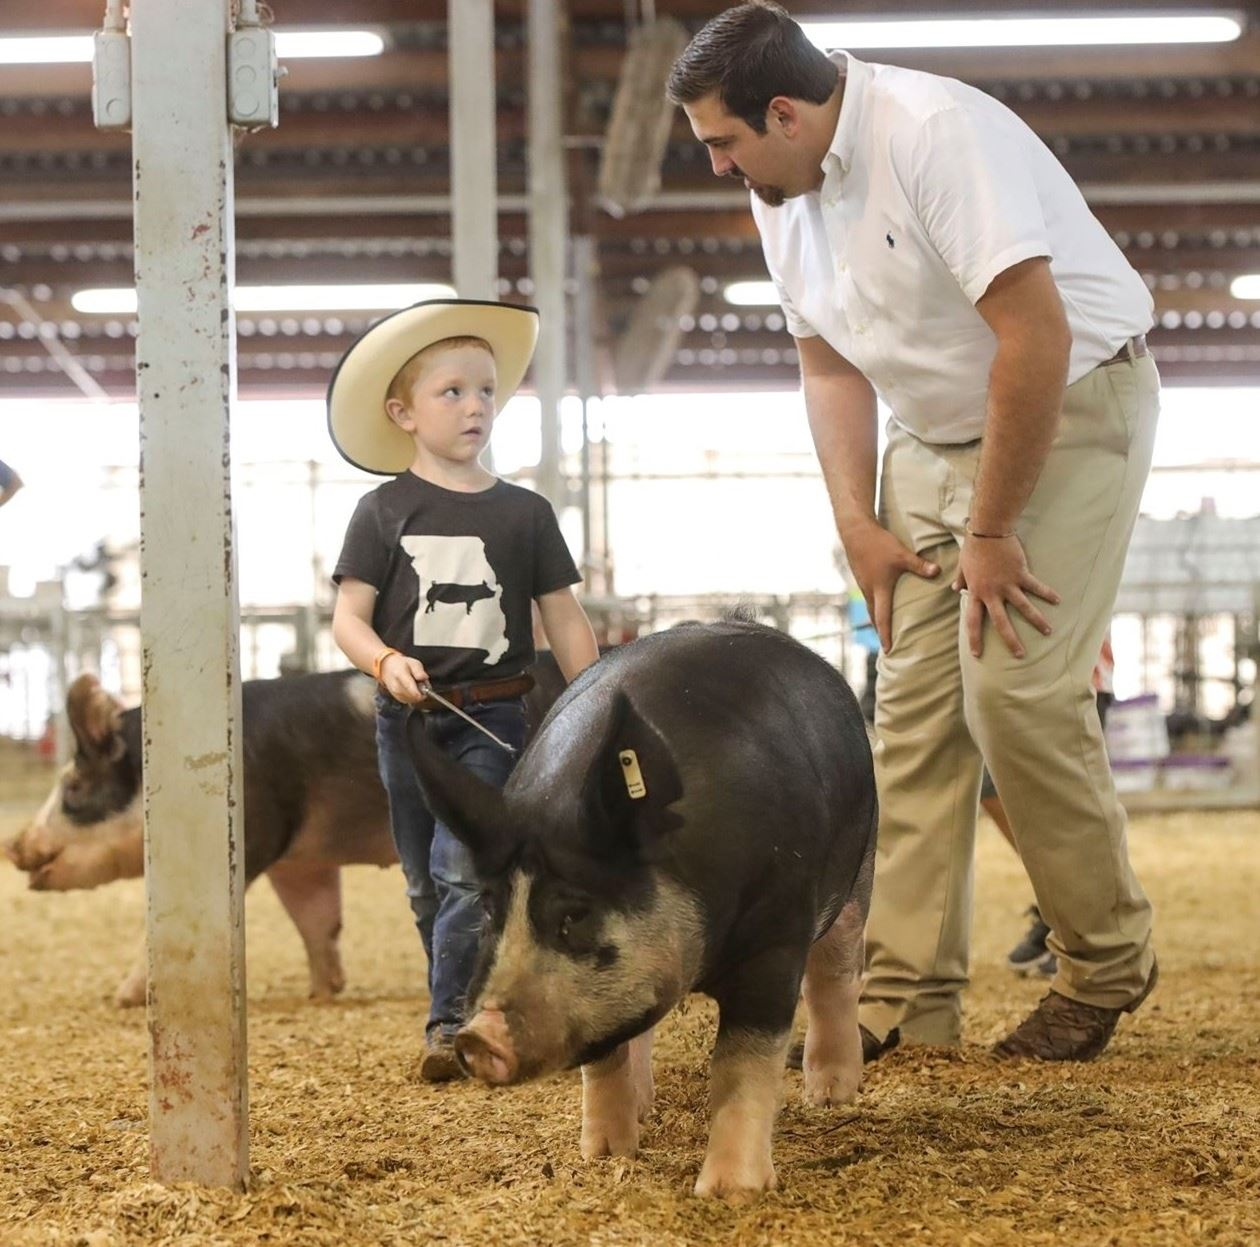 Young boy showing a pig in an arena while a judge asks him a question.